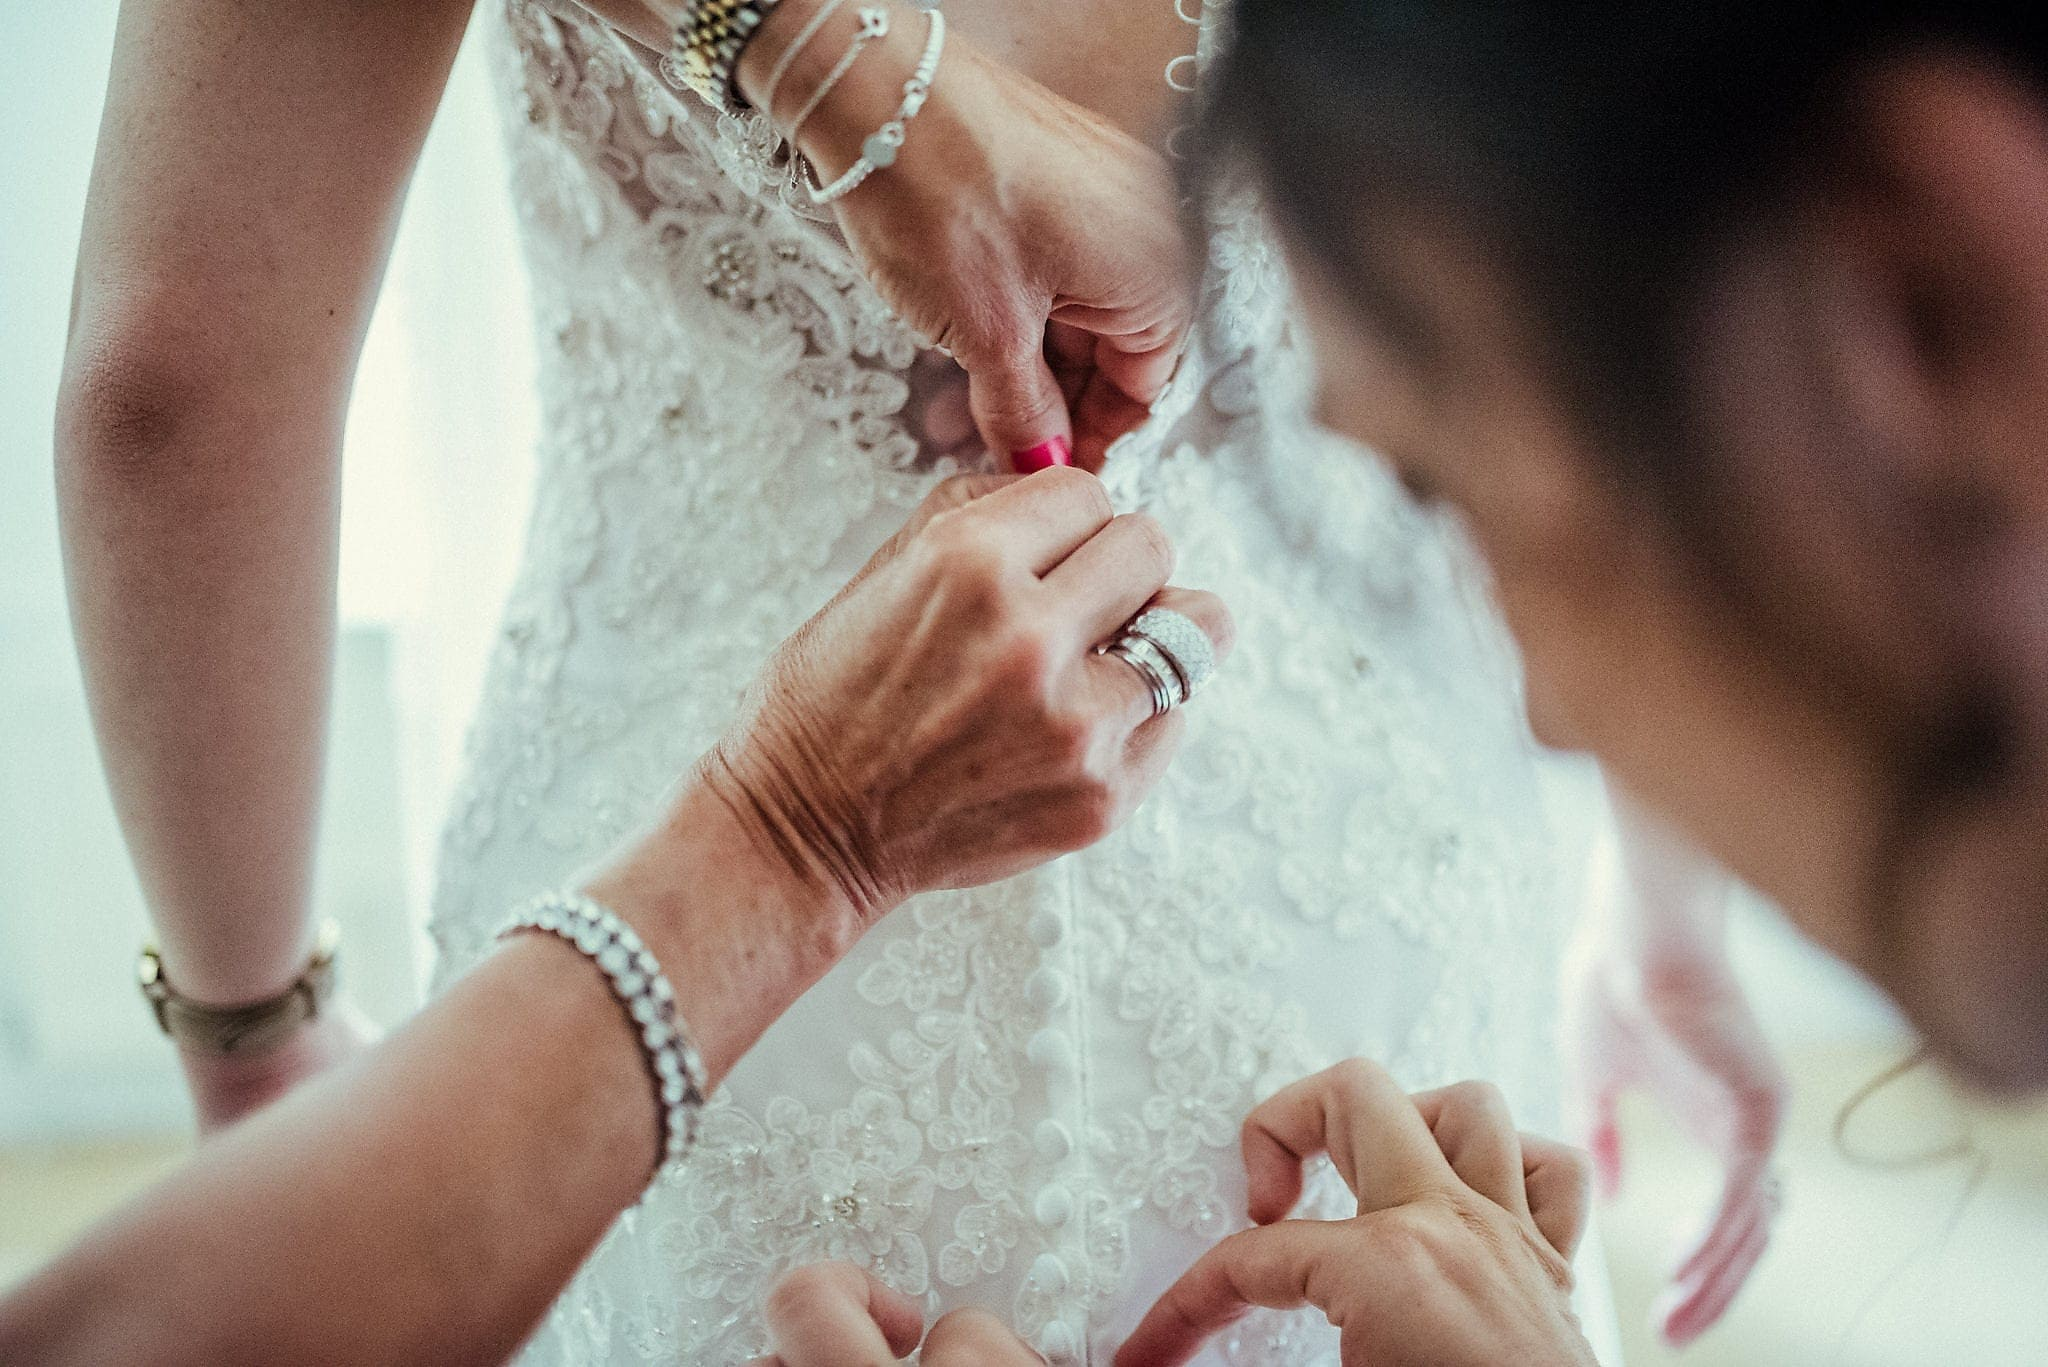 Hands fastening the bride's wedding dress buttons